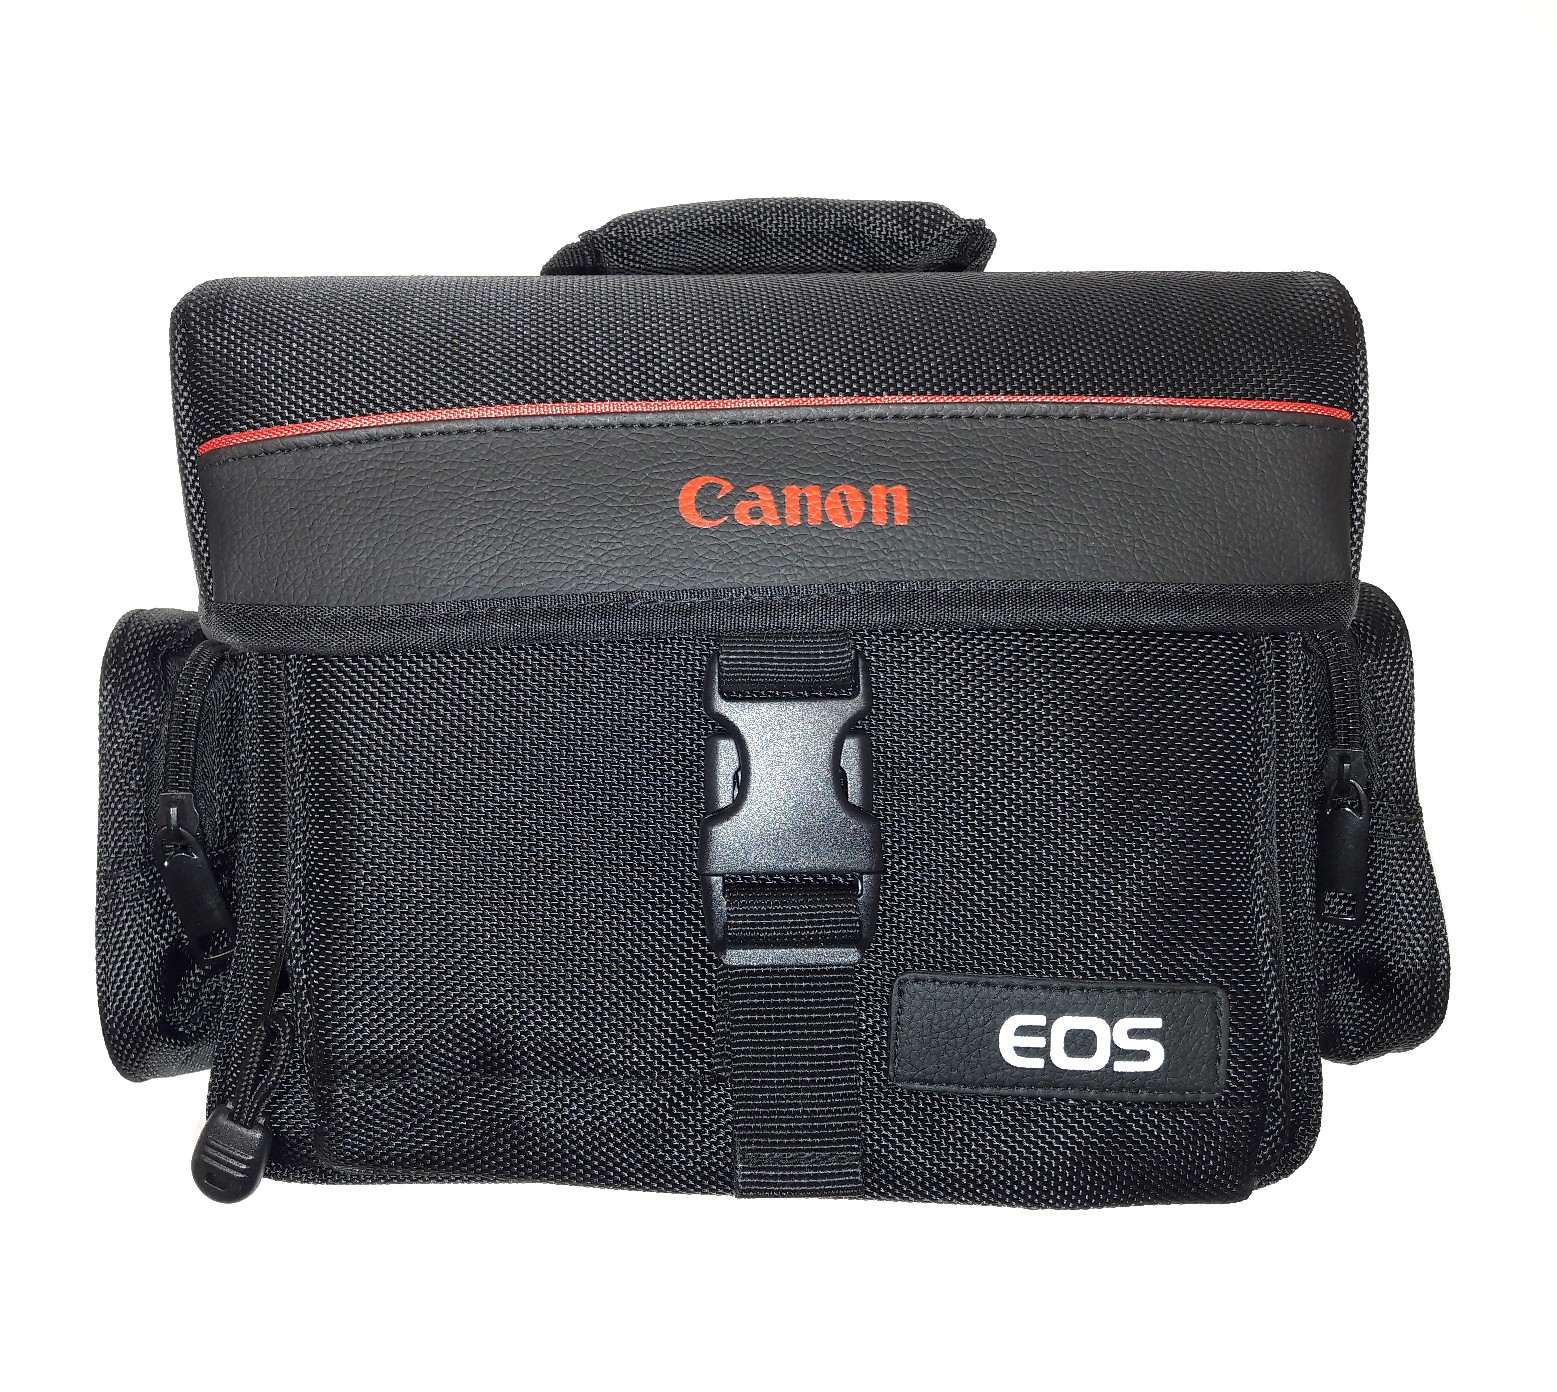 Canon borsa camera bag EOS Black